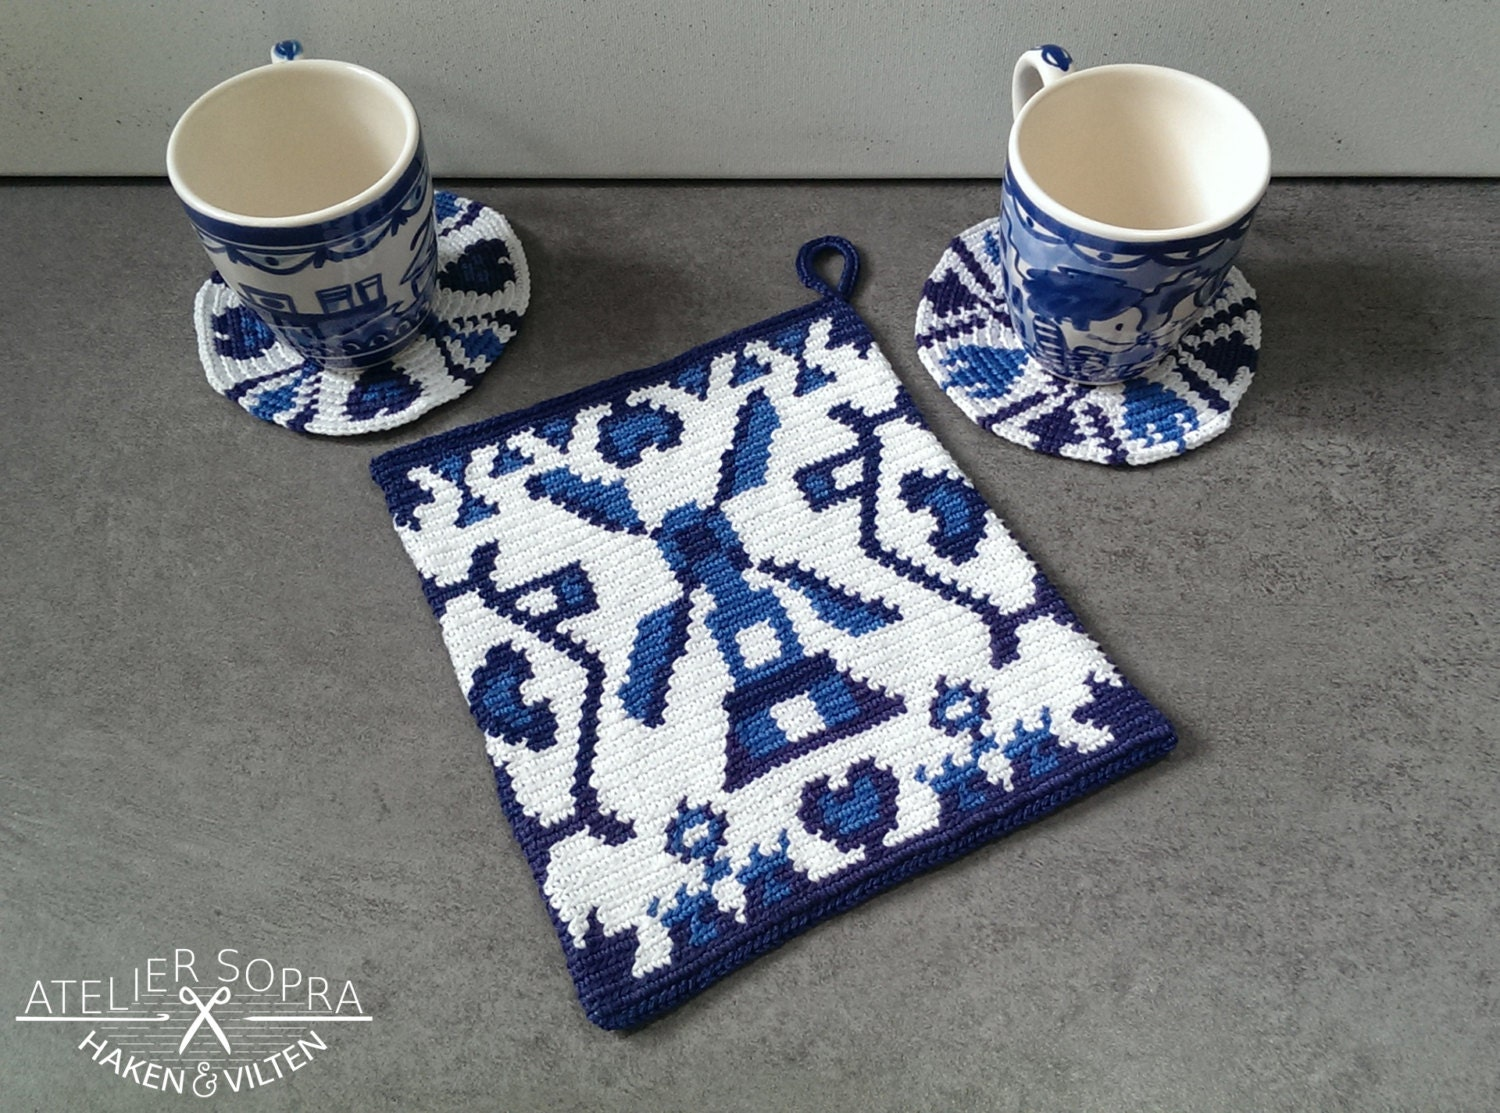 Tapestry Crochet Potholder Pattern Delft blue from AtelierSopra on ...